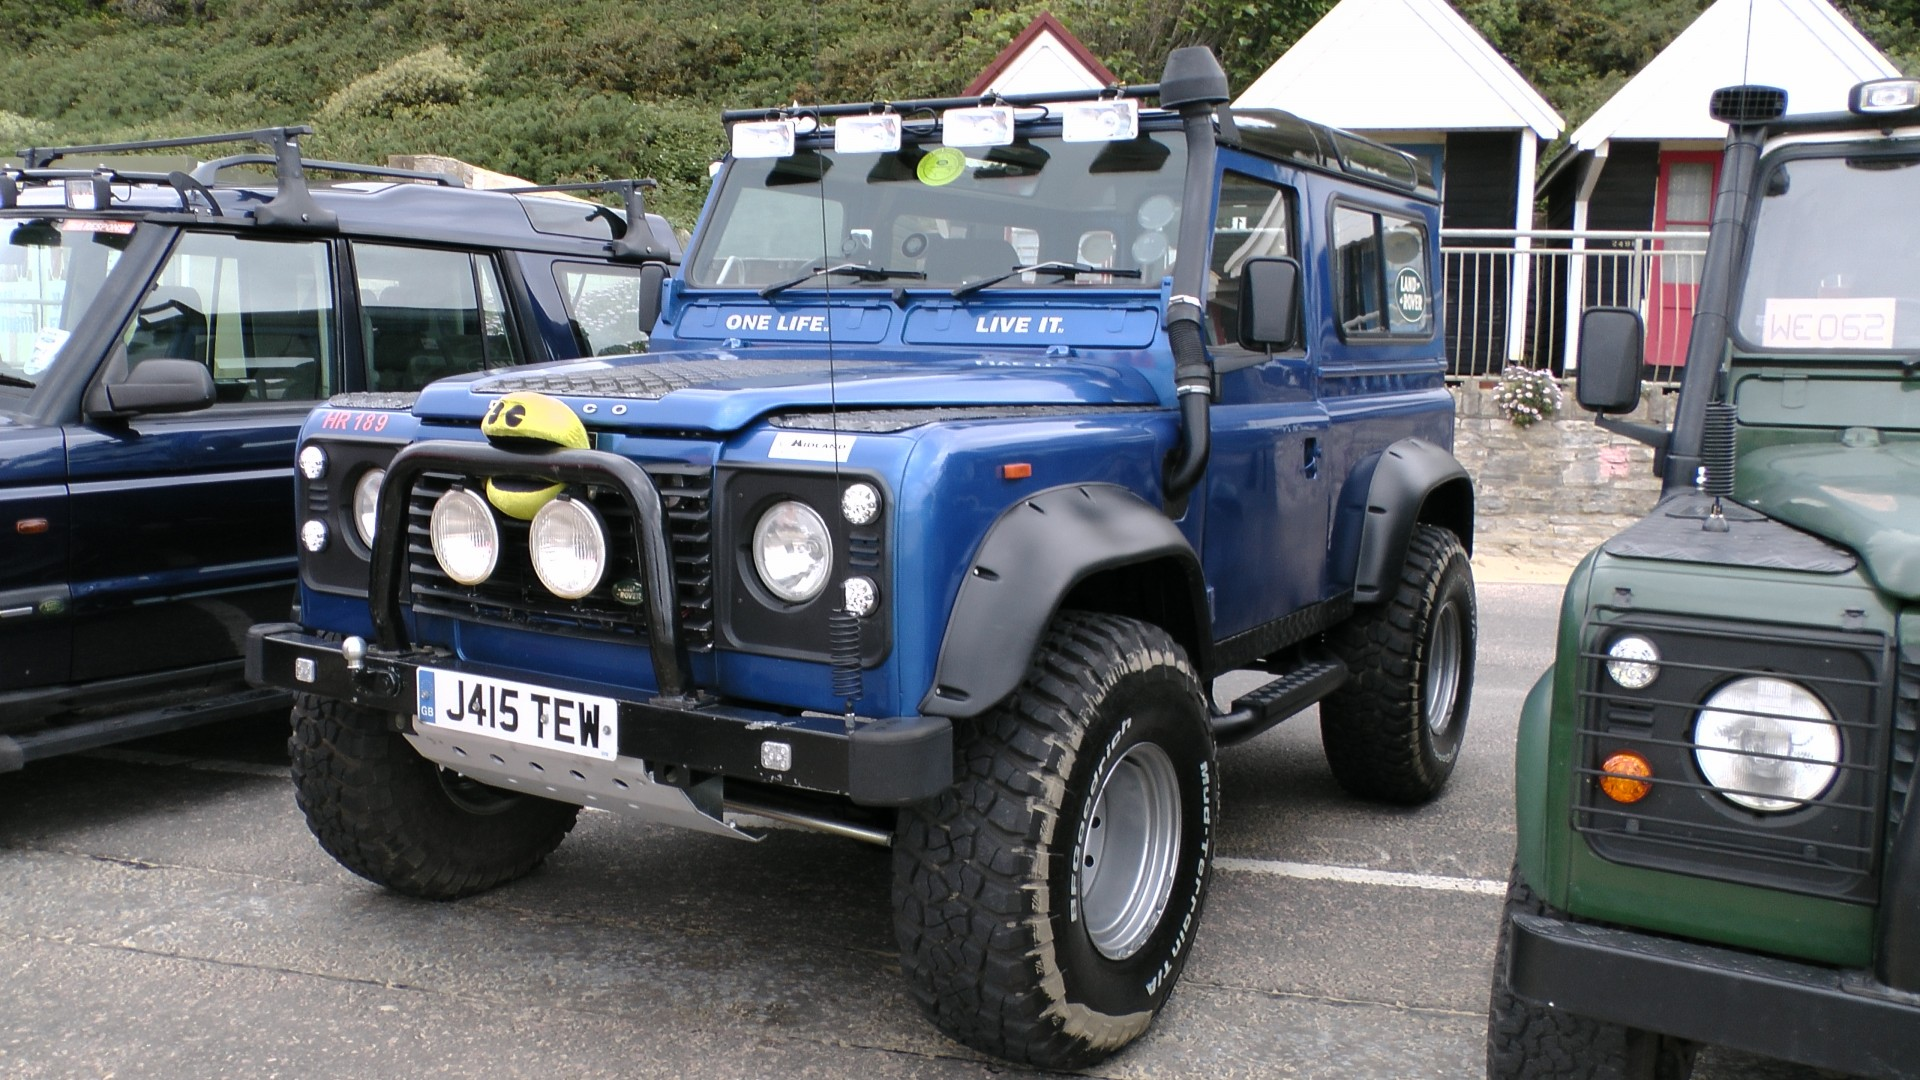 Blue Land Rover Jeep Free Stock Public Domain